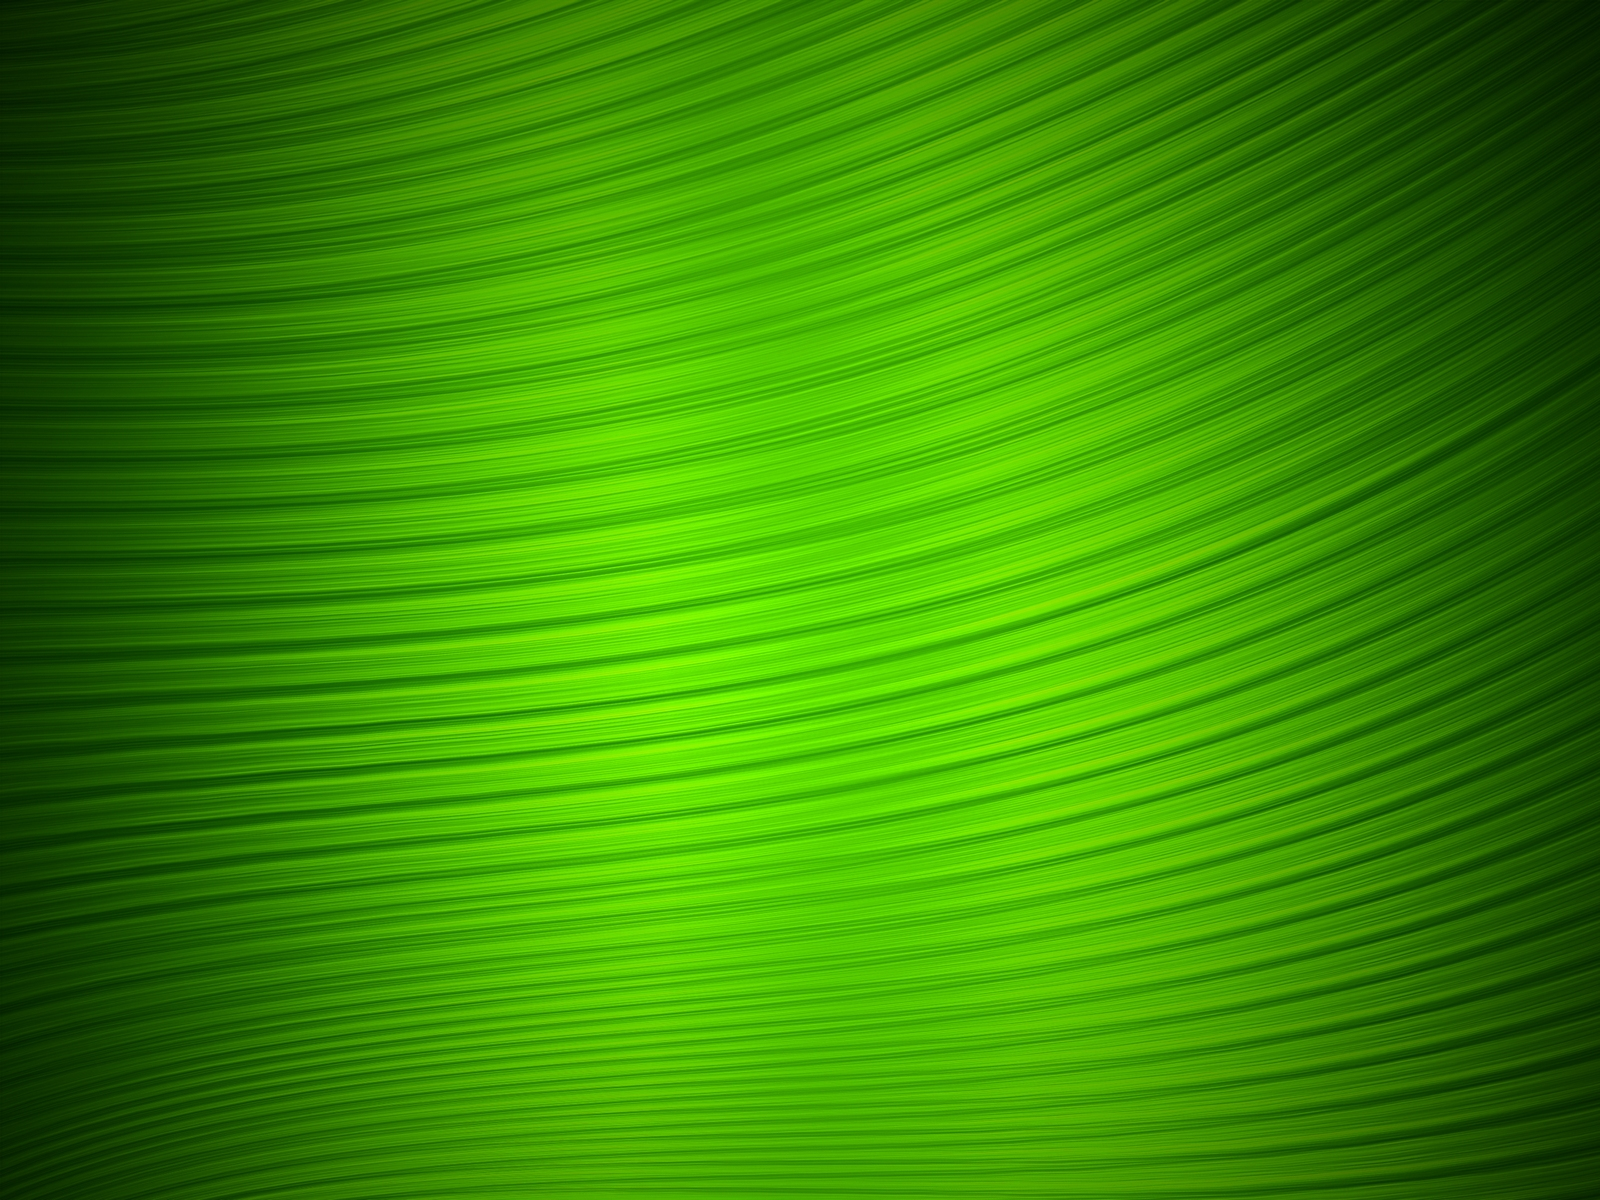 Green Wallpaper Wallpaper  - Green Wallpaper Green